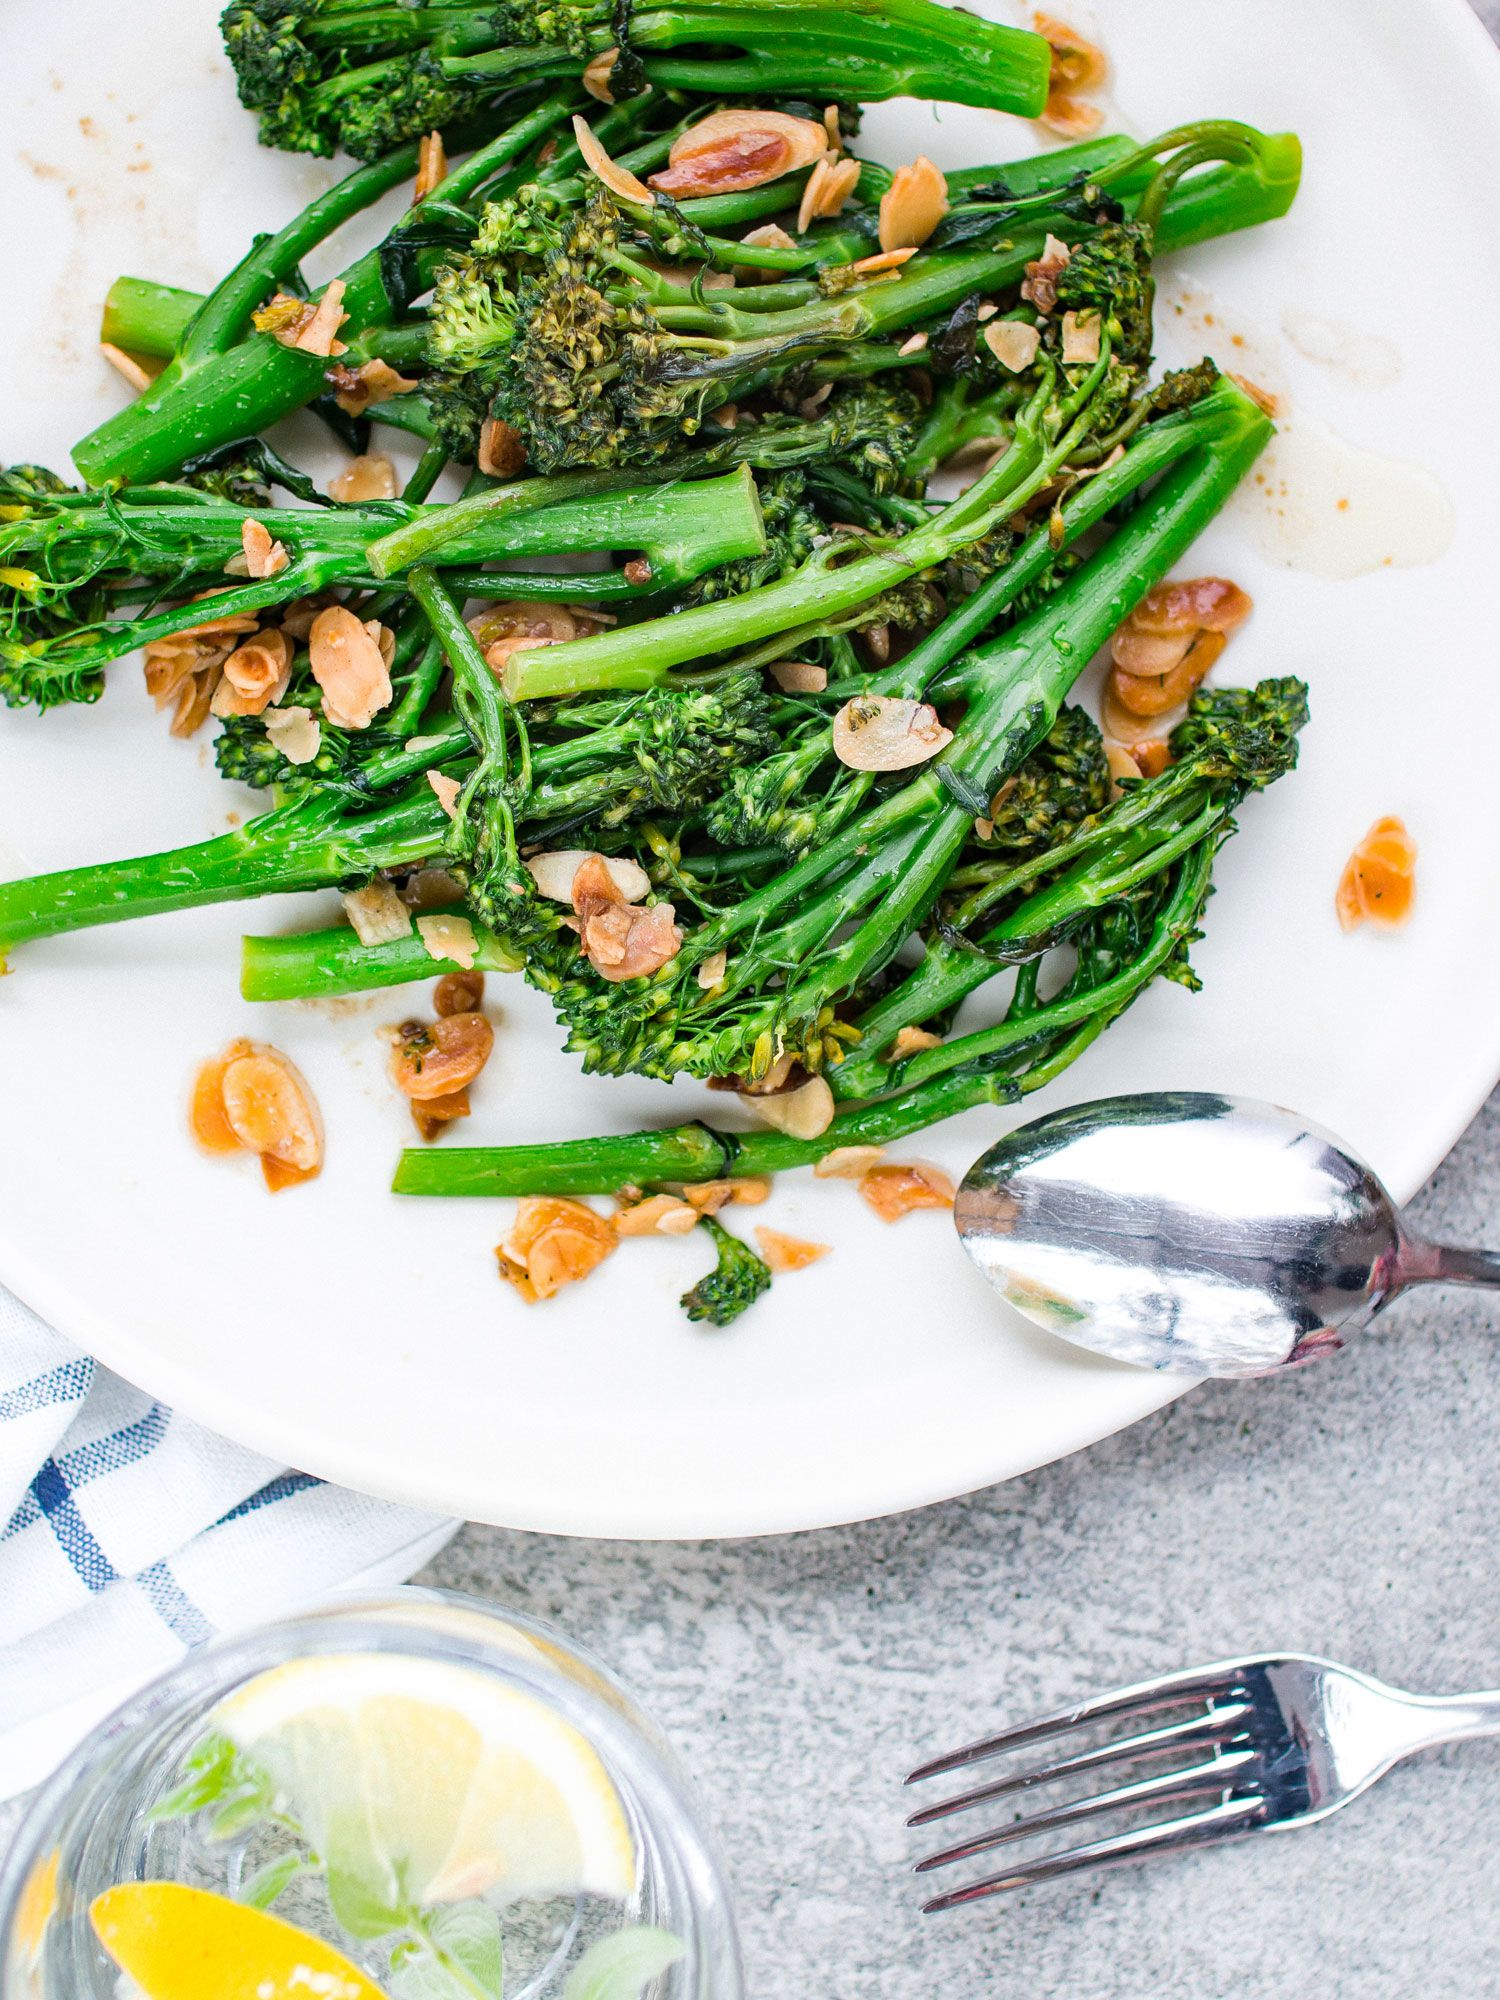 Broccolini with Garlic and Almonds